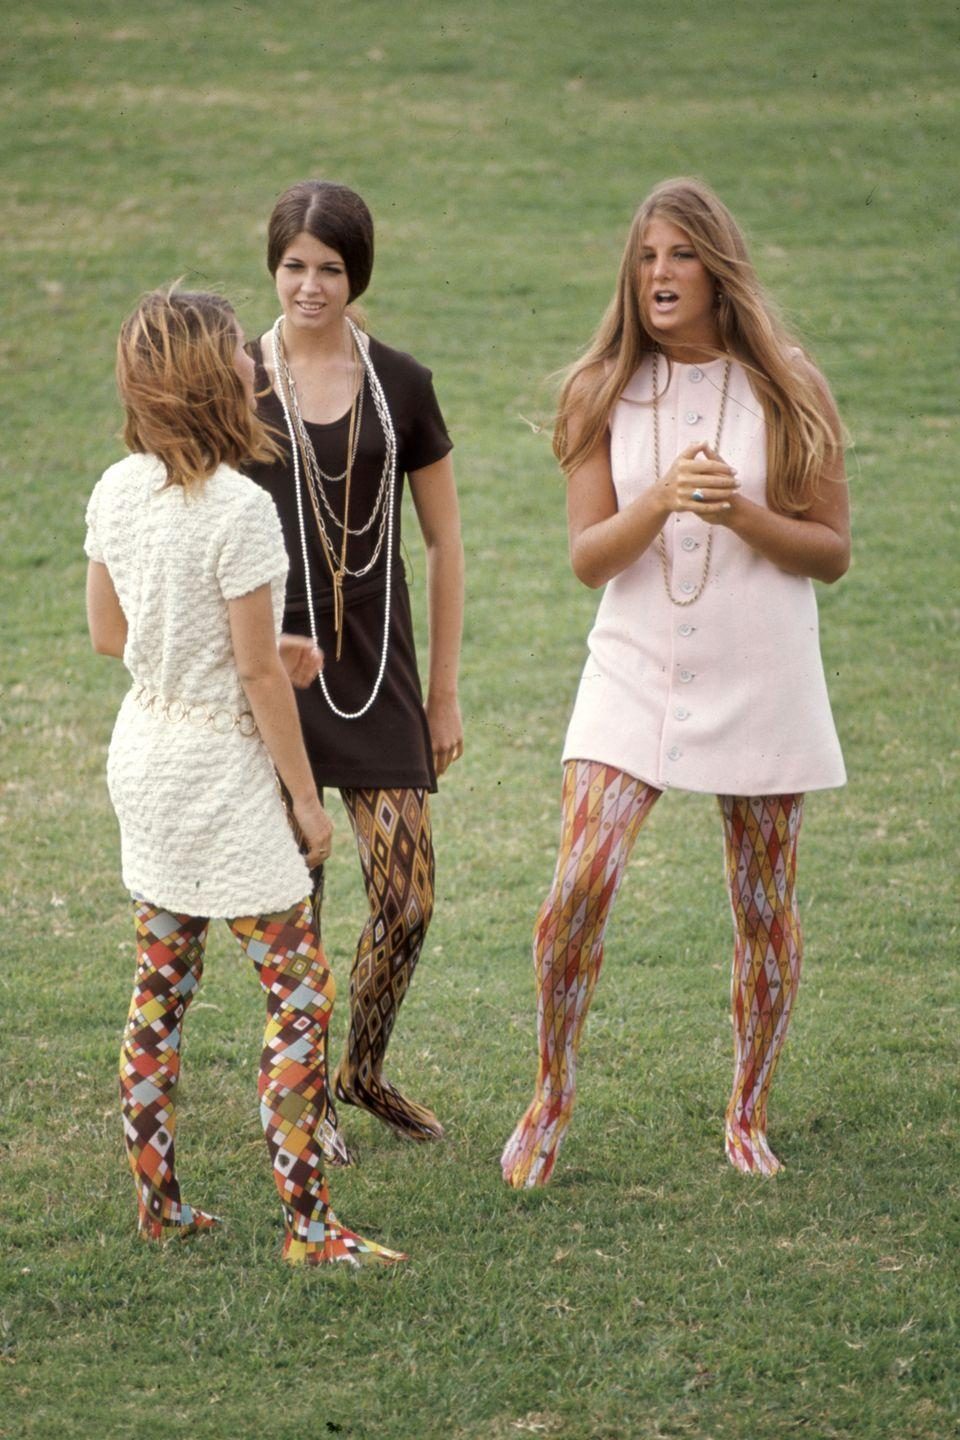 <p>Whoever thought that multi-colored, multi-patterned tights would flatter ANY HUMAN'S legs was seriously mistaken. </p>